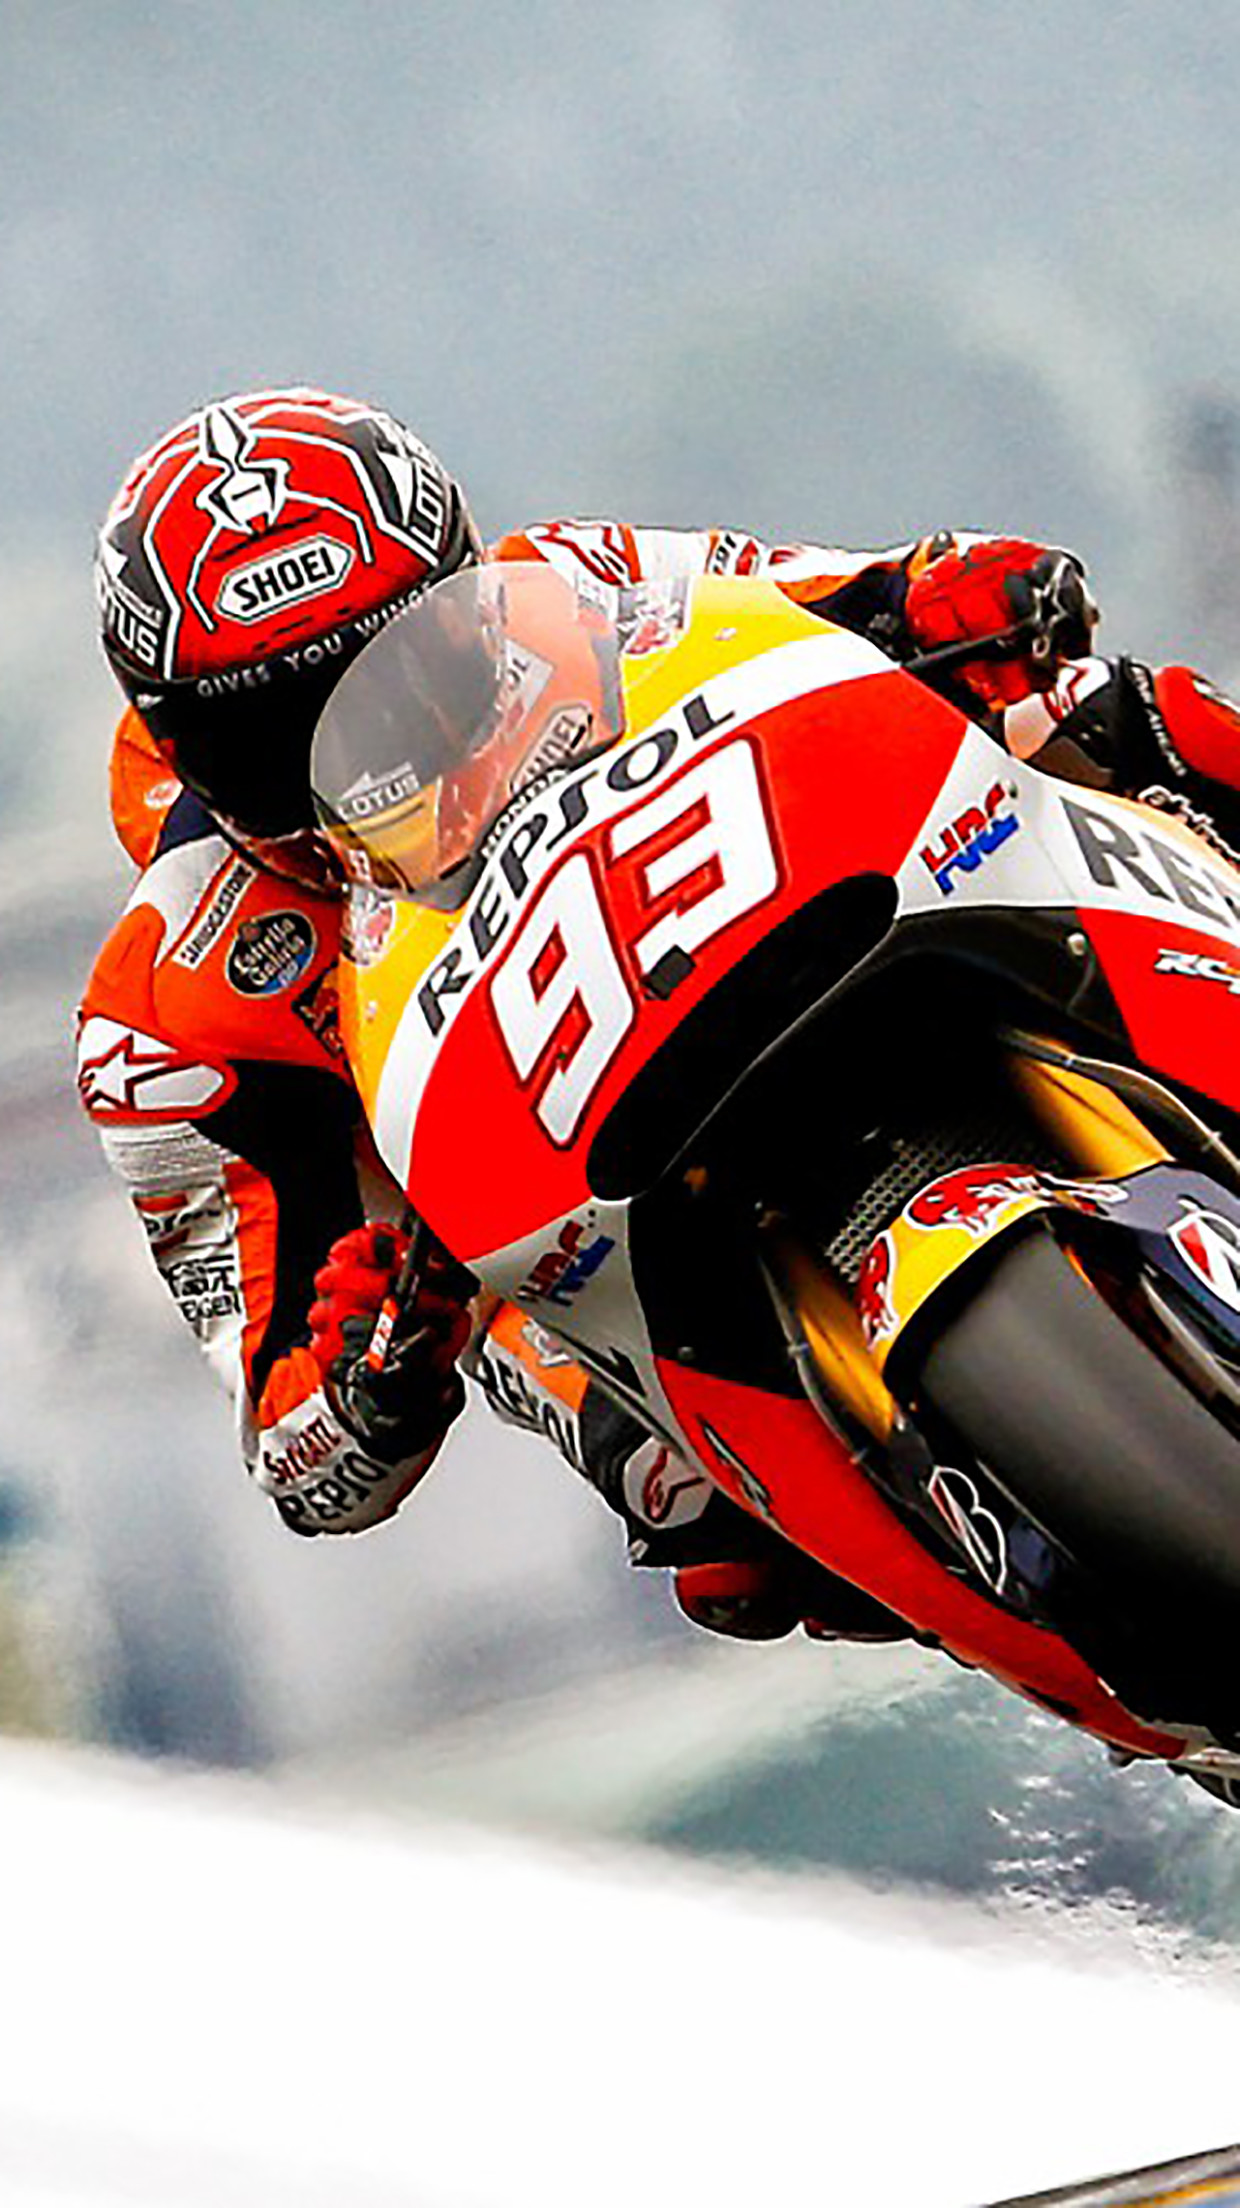 Moto Gp Ultra Hd 4k Wallpapers Moto Gp 268101 Hd